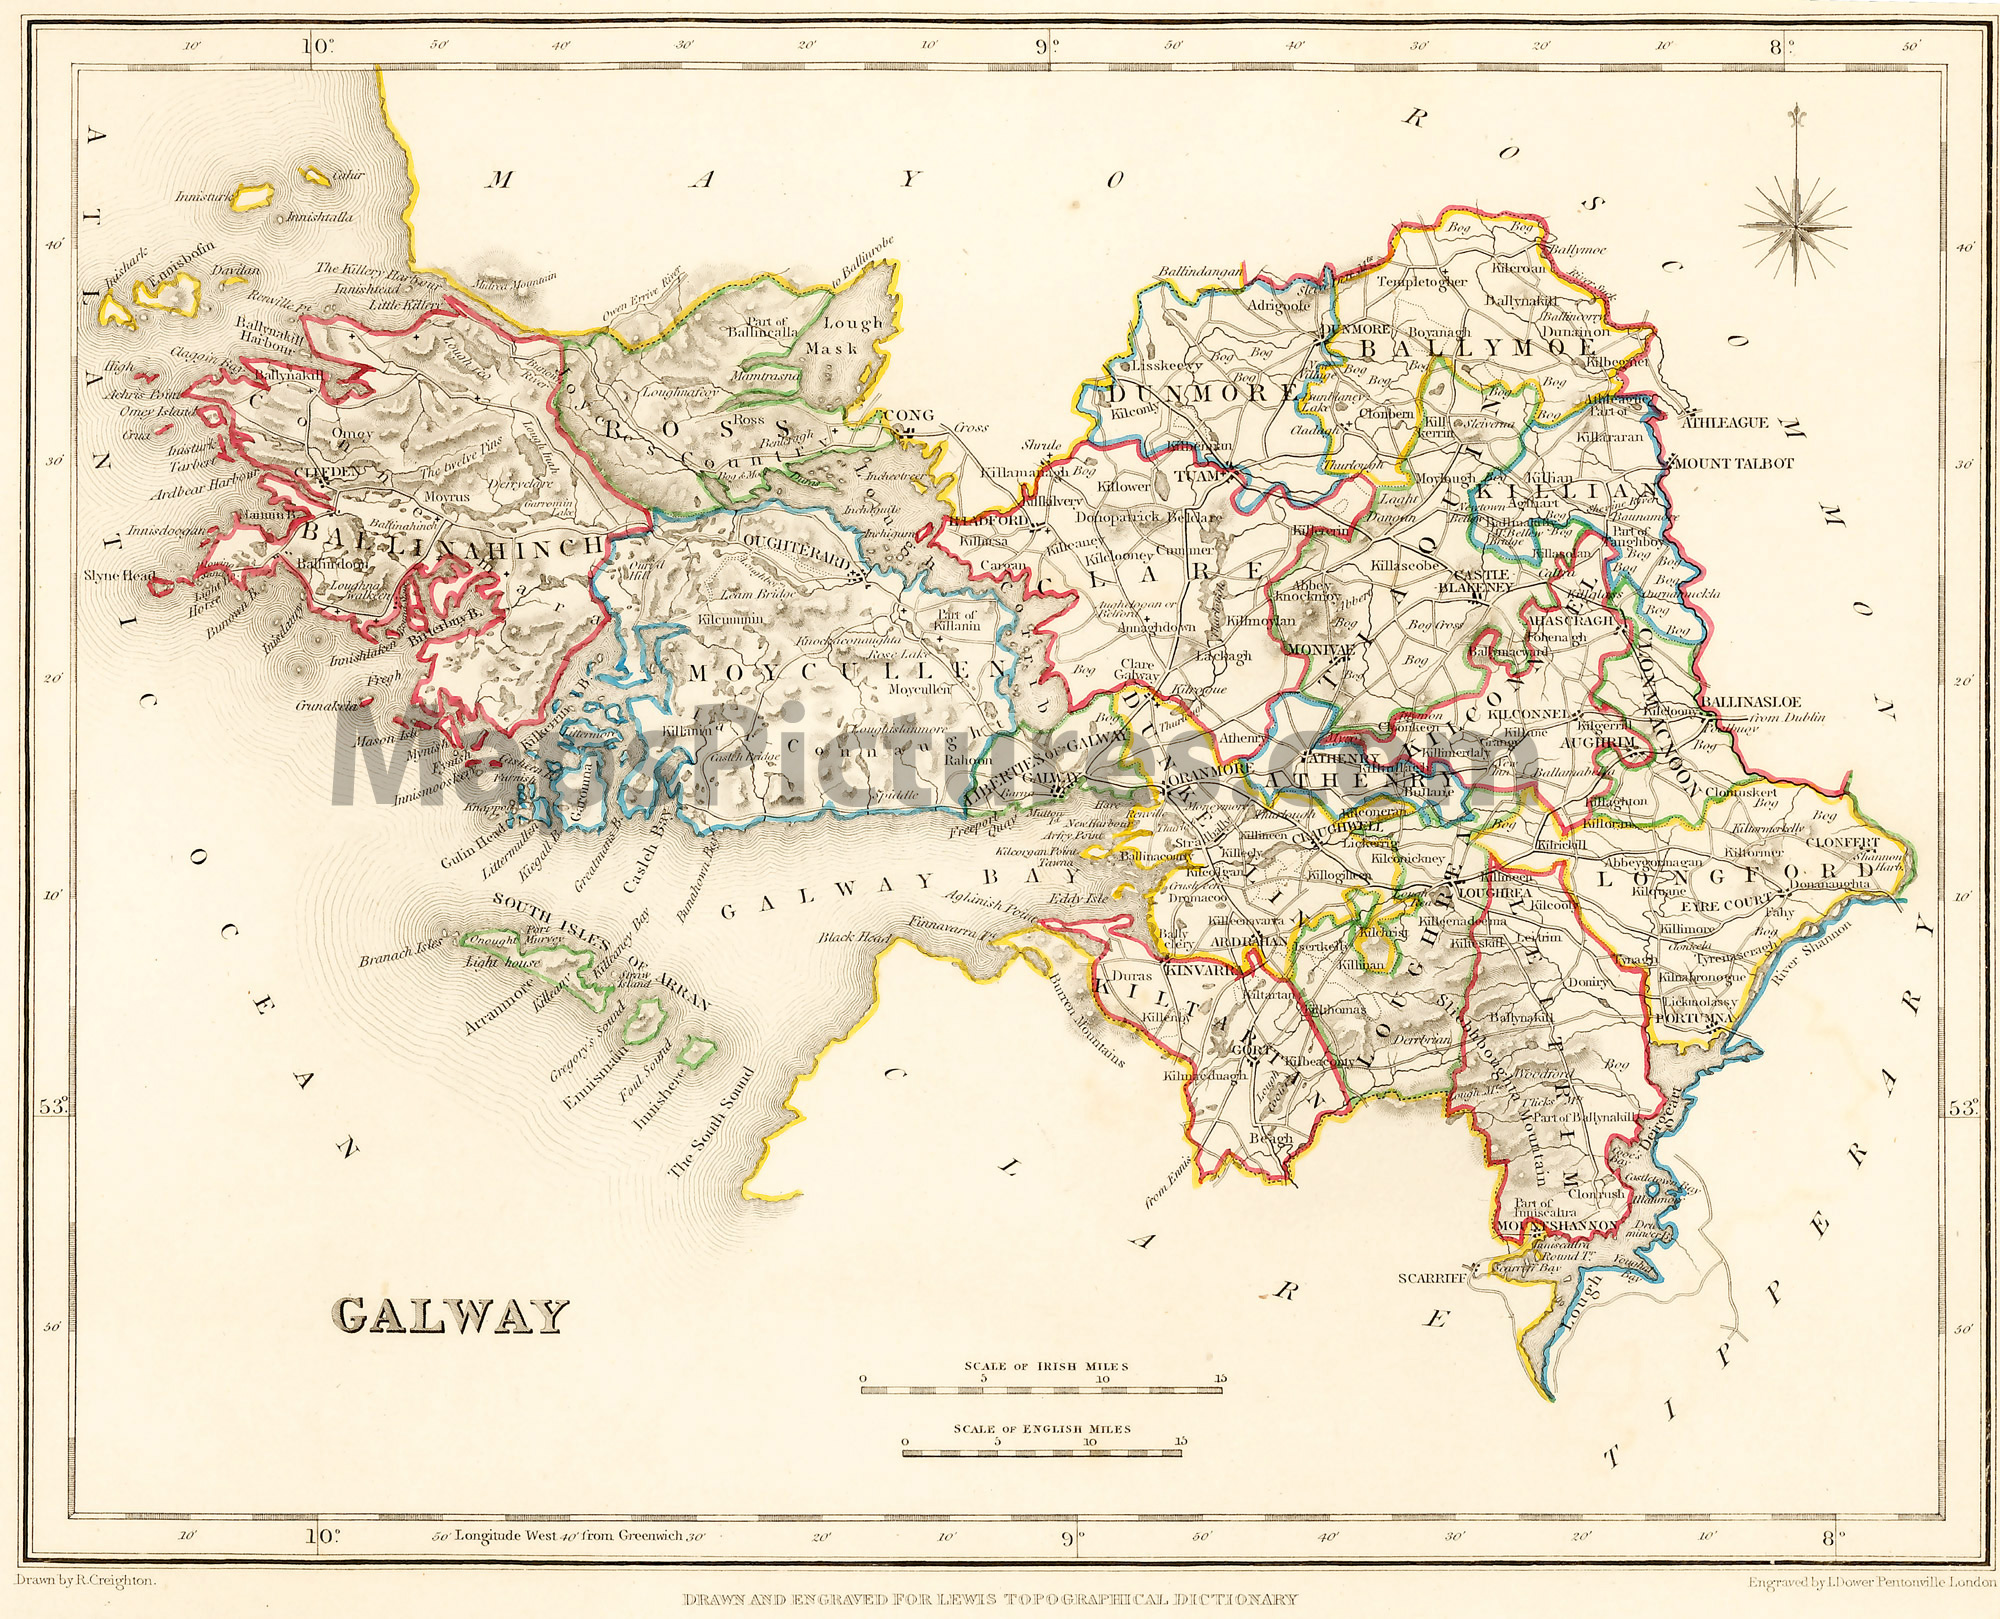 County Galway, 1837 map